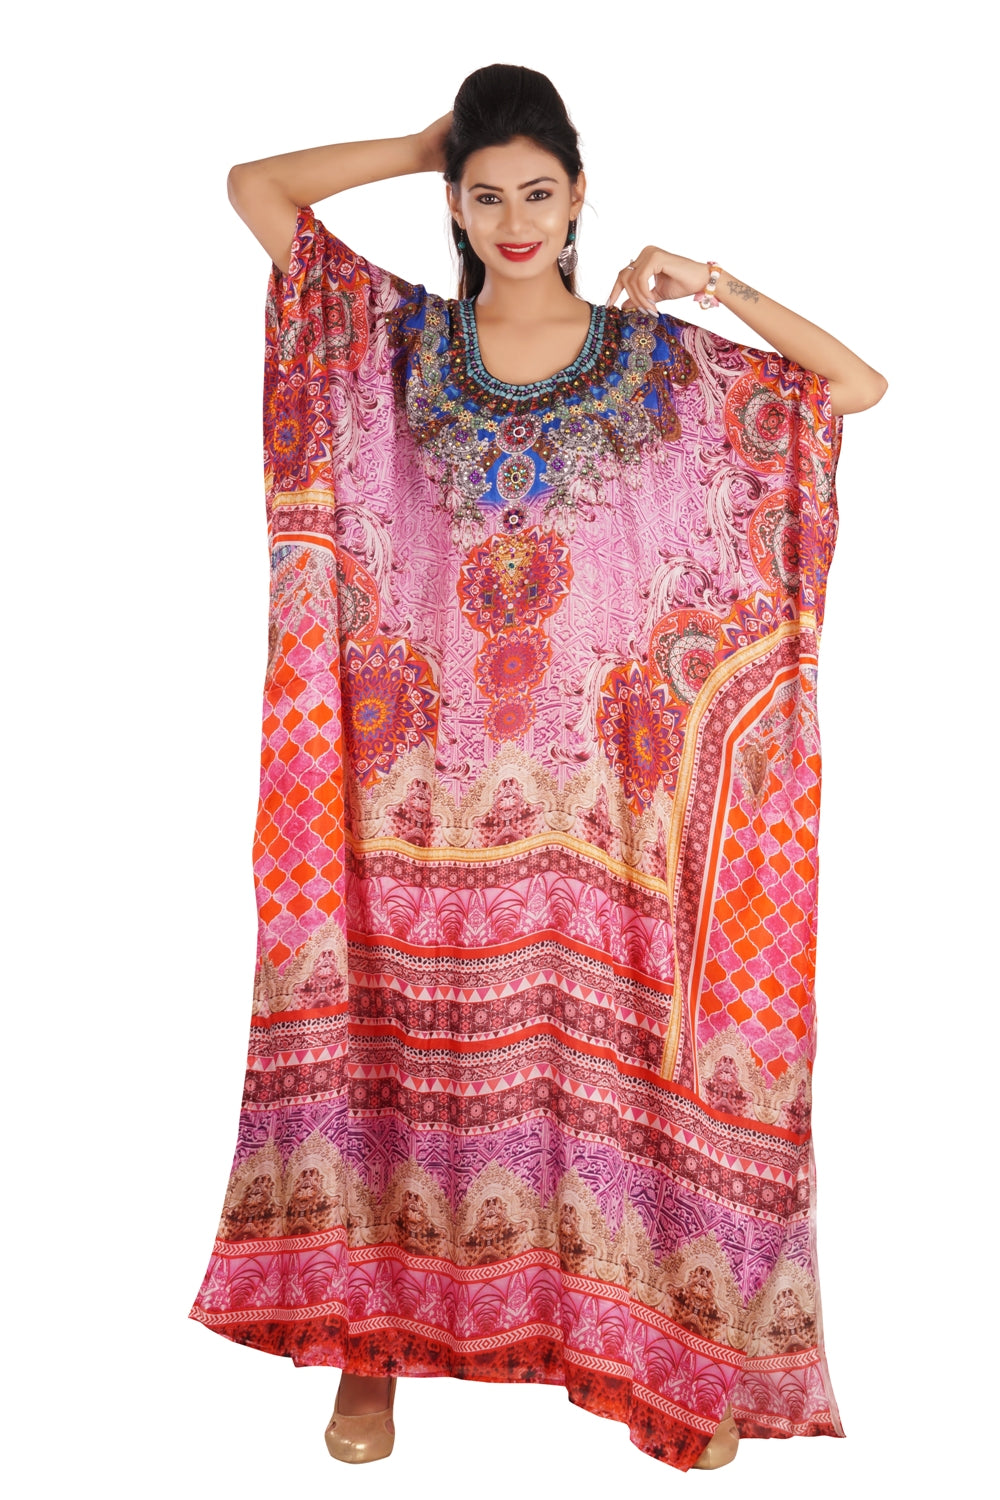 Graceful Silk Kaftan Maxi Dress with Stunning Beaded Neckline luxe beach kaftan - Silk kaftan